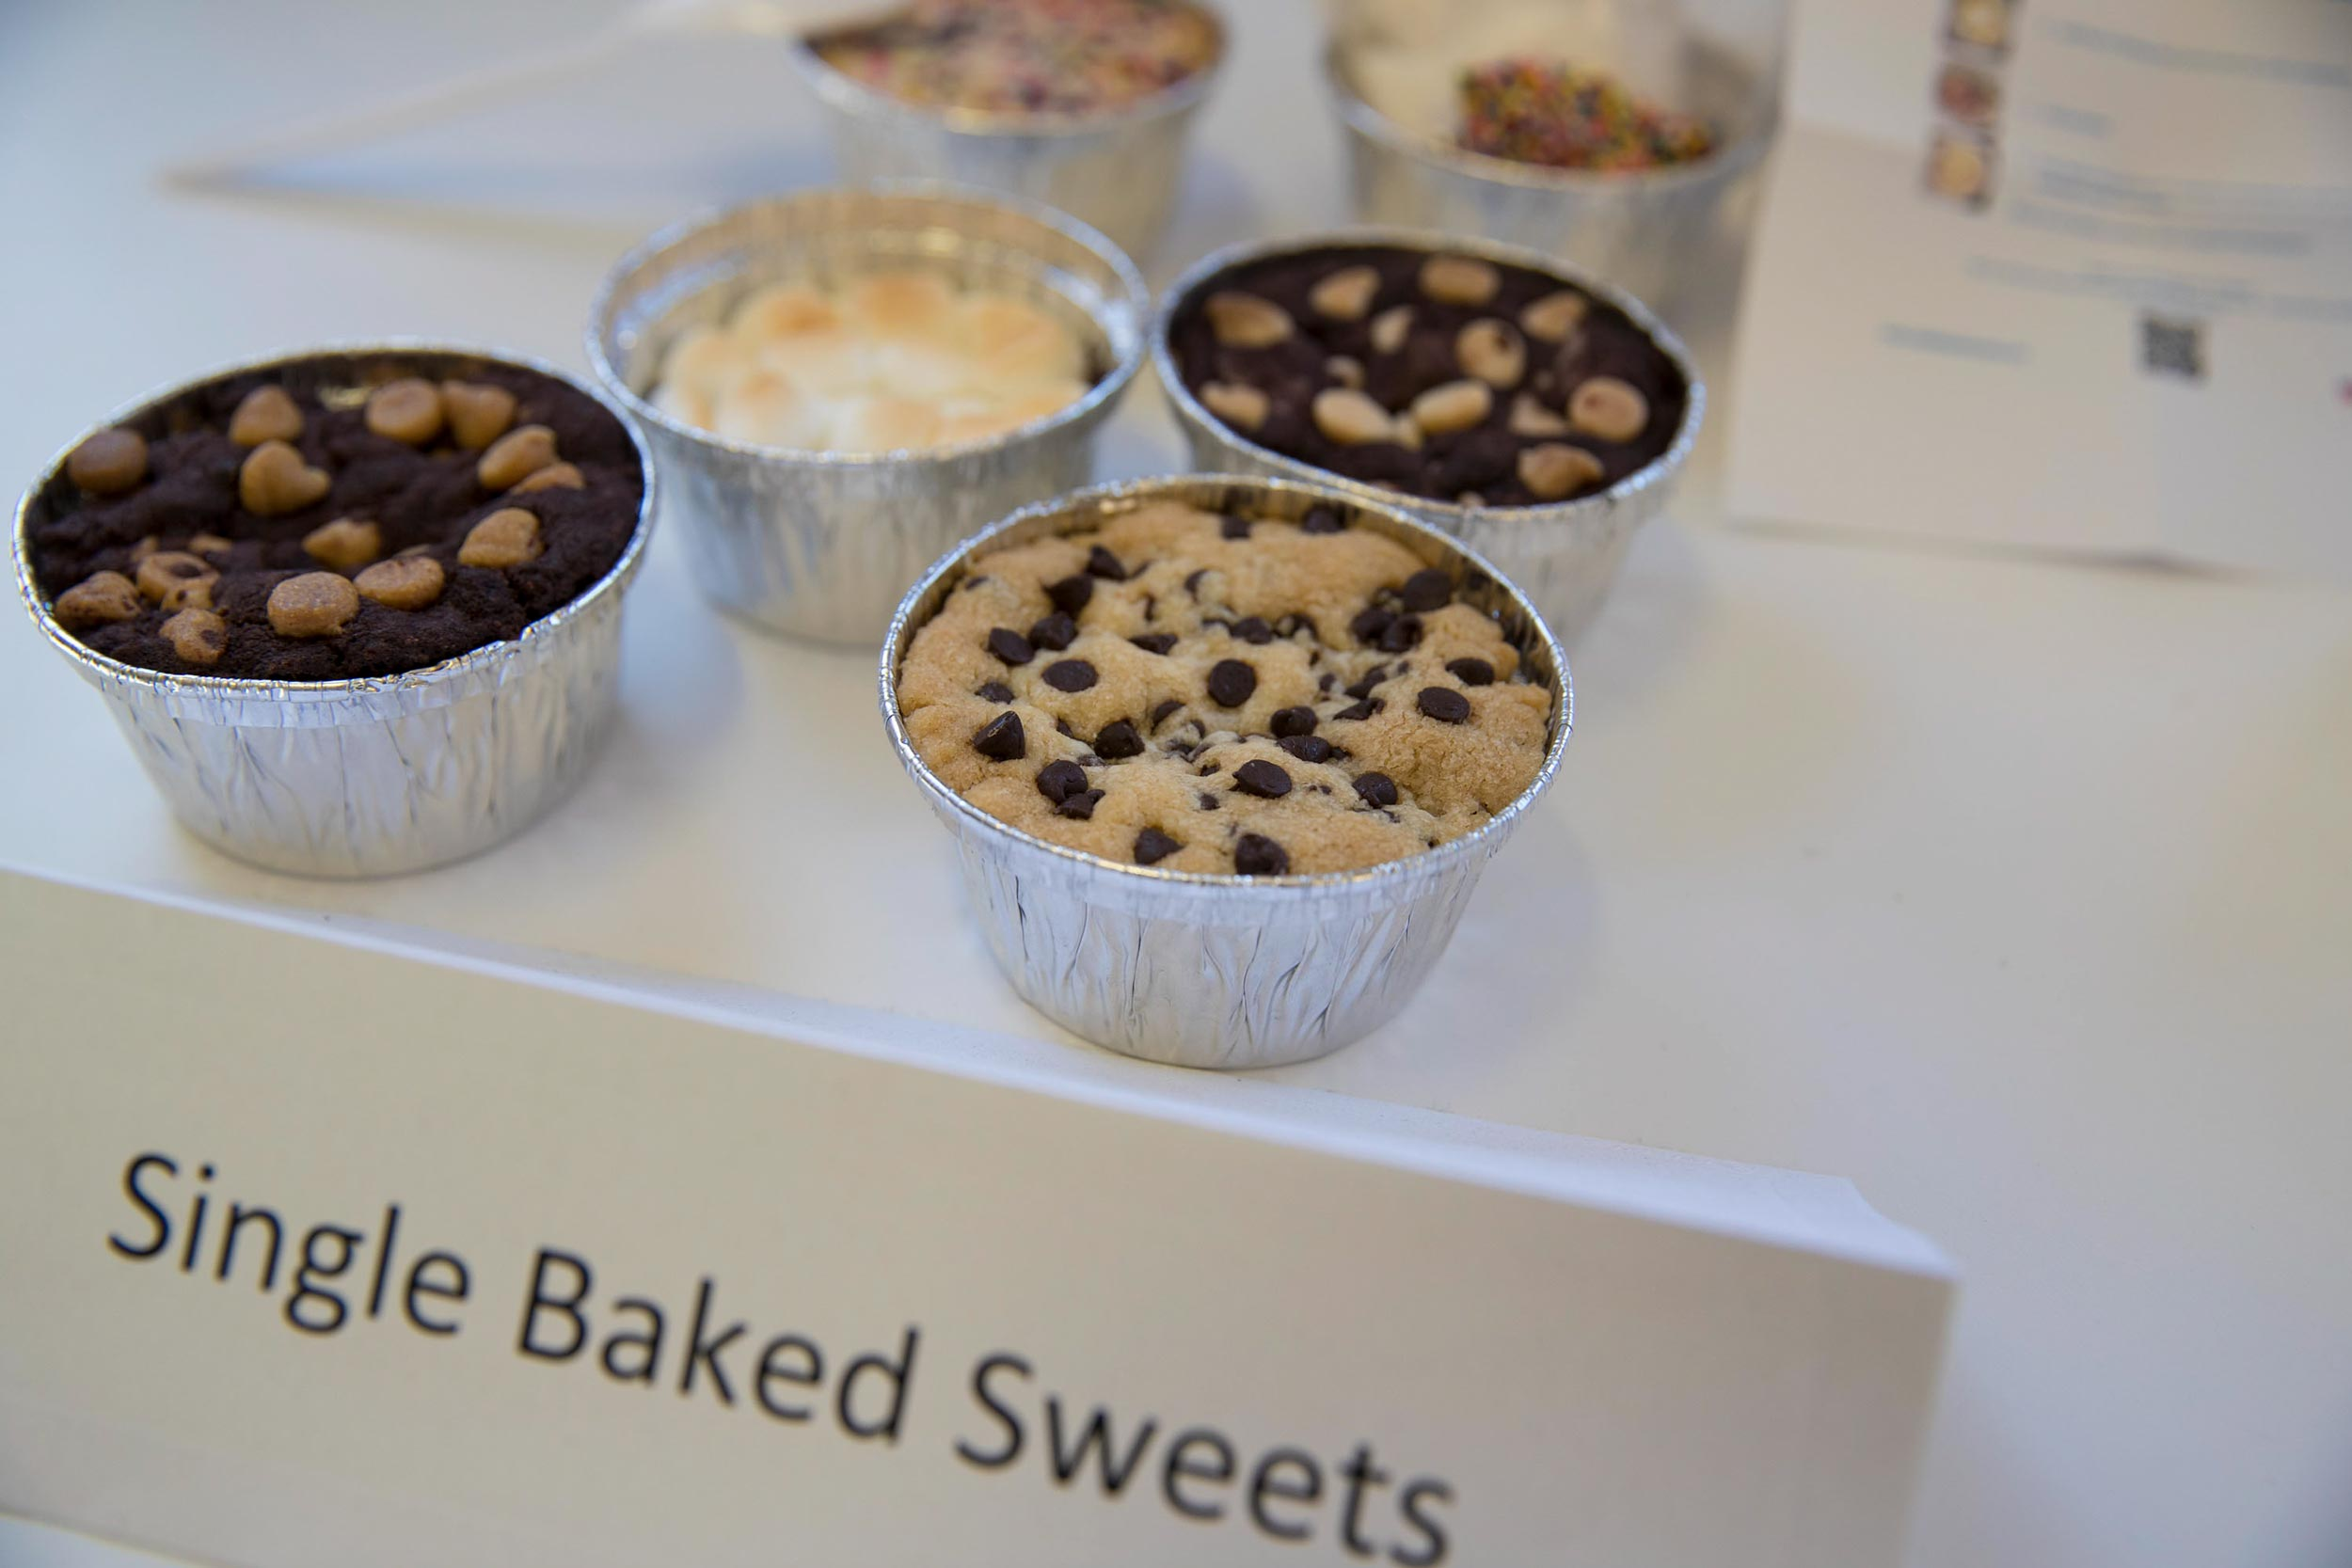 Stefaniak currently offers five desserts: a chocolate chip cookie, a s'mores pie, a sugar cookie, a dark chocolate cookie with white chocolate chips and a dark chocolate peanut butter cookie.